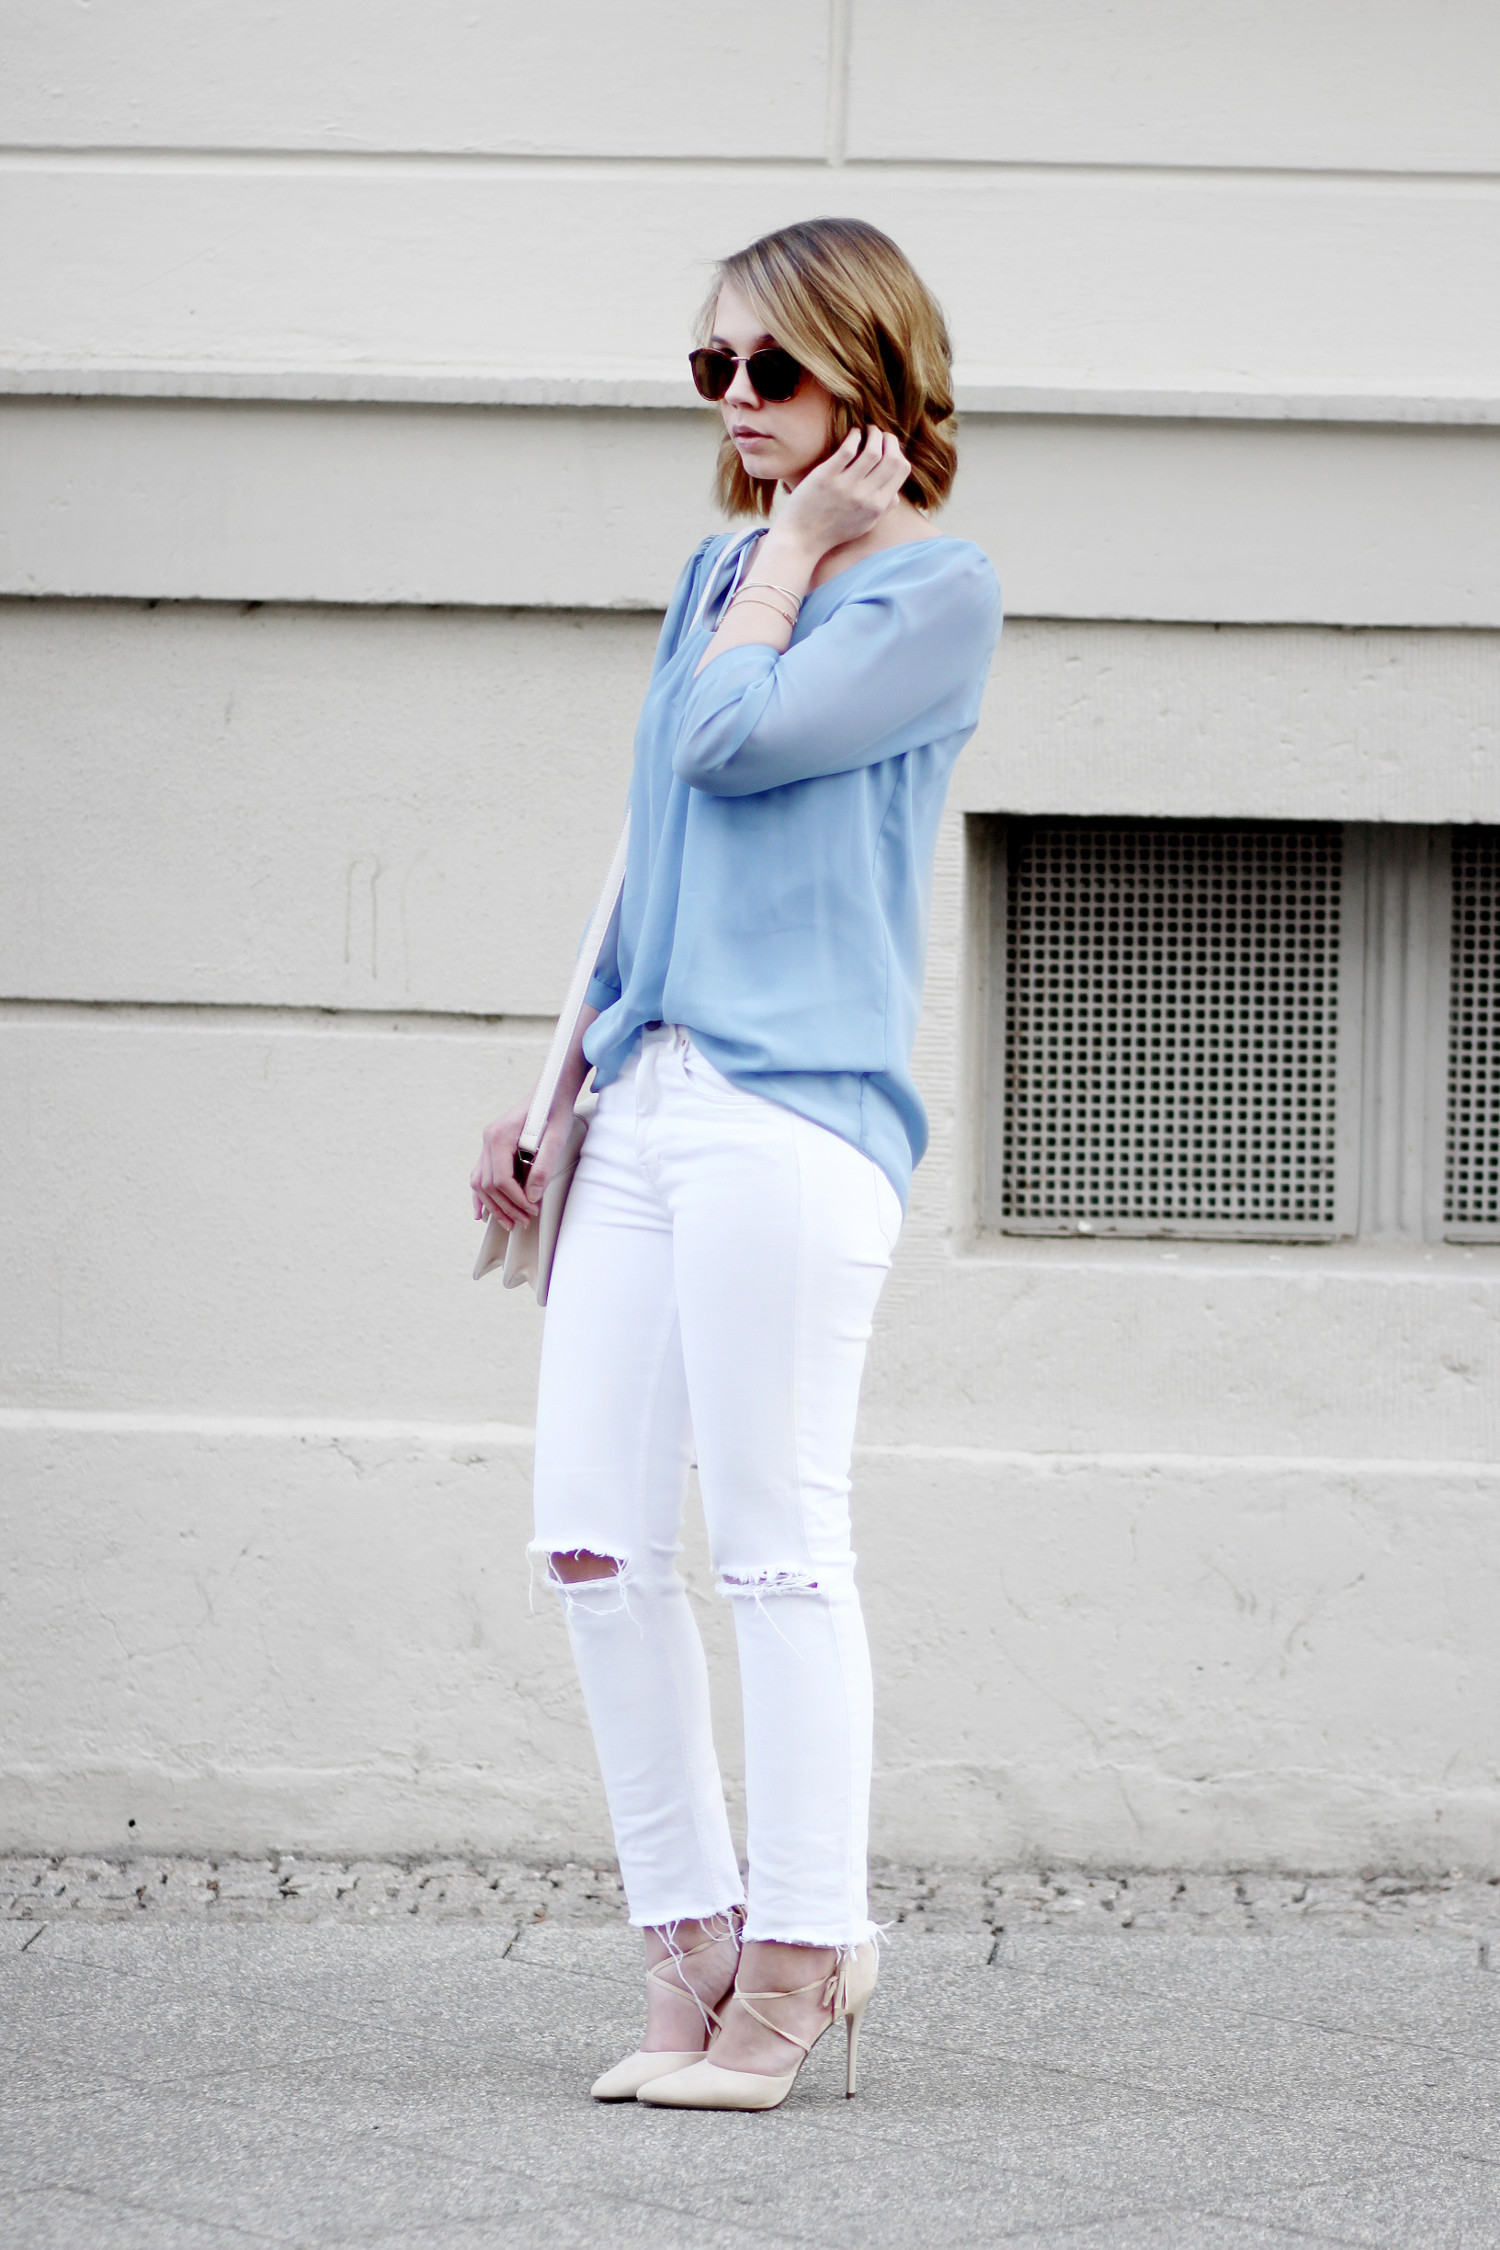 Bezaubernde Nana, bezauberndenana.de, Fashionblog, Pastellfarben, Outfit, Frühlingsoutfit, Outfit in Hellblau und Weiß, Streetstyle, hellblaue Bluse Clockhouse, weiße ripped Jeans H&M, Beige Lace Up Pumps JustFab